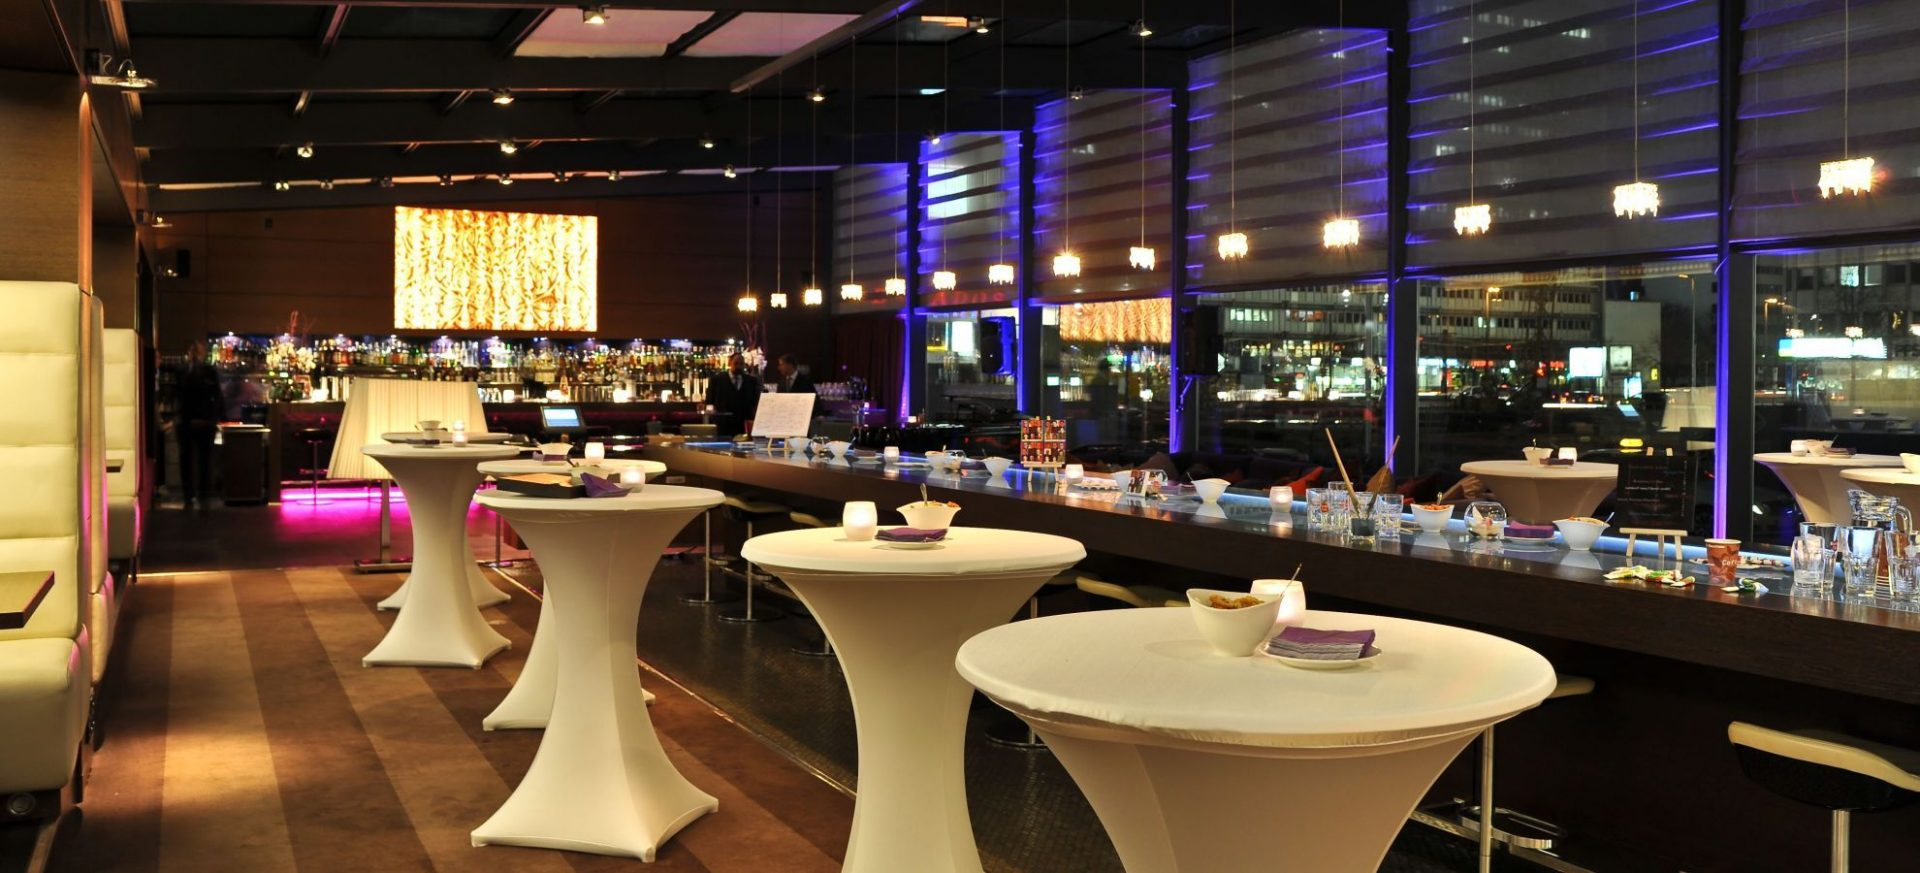 Park Inn Berlin Alexanderplatz Spagos Restaurant, Bar & Lounge